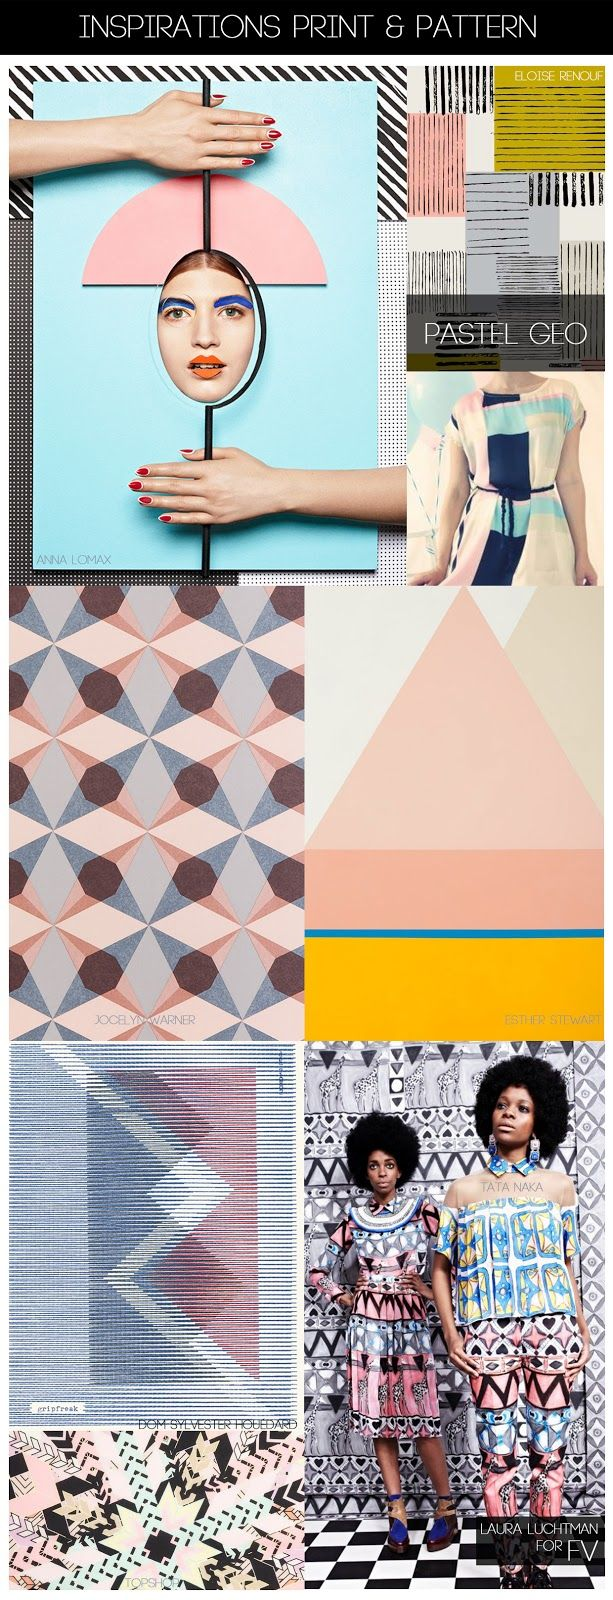 FASHION VIGNETTE: [ INSPIRATIONS PRINT + PATTERN ] KUKKA by Laura Luchtman | SS14 Pastel Geo